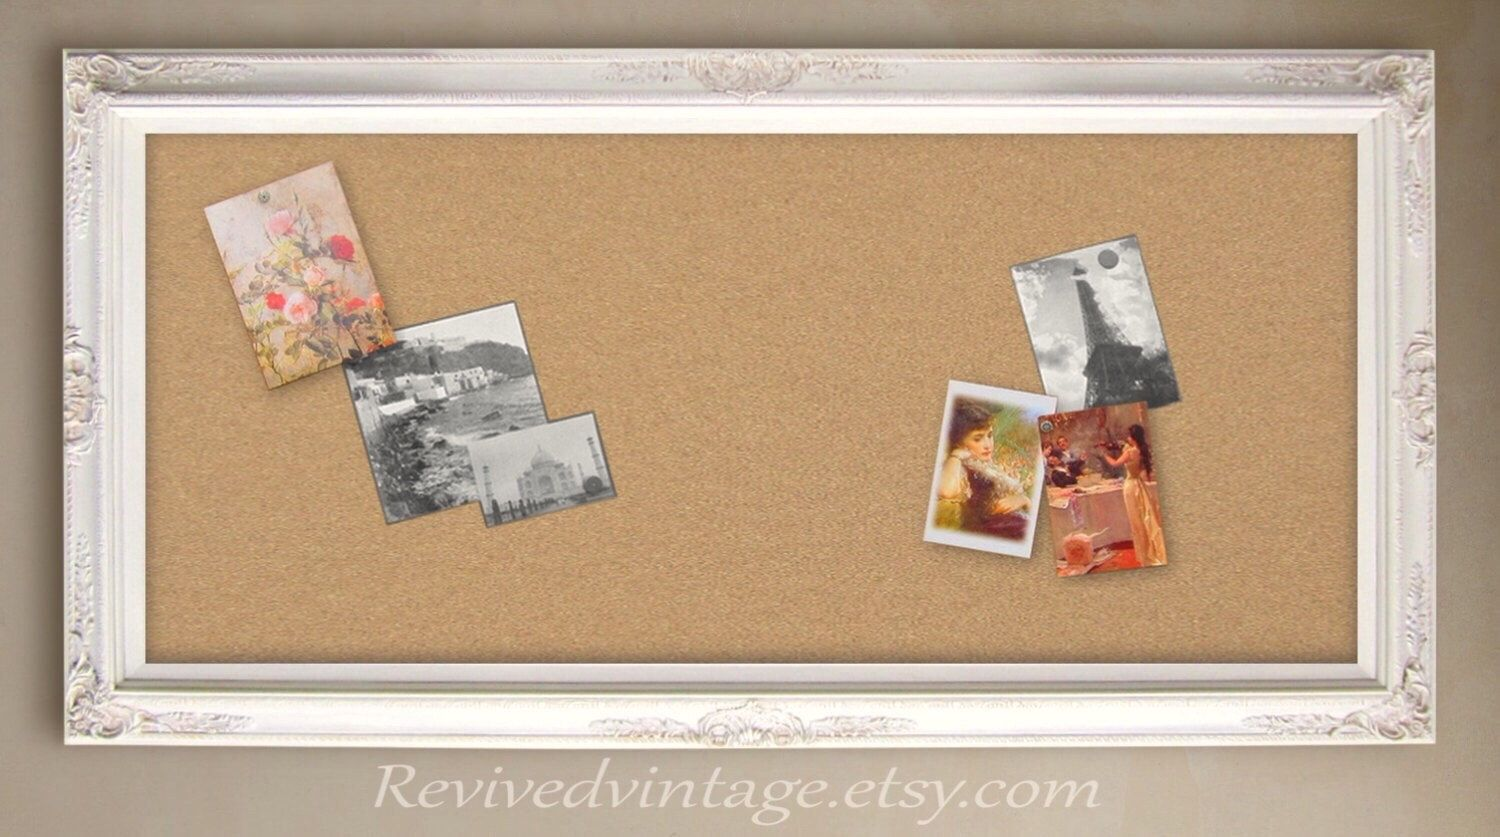 Cork Board Ideas For Your Home And Your Home Office Cork Board